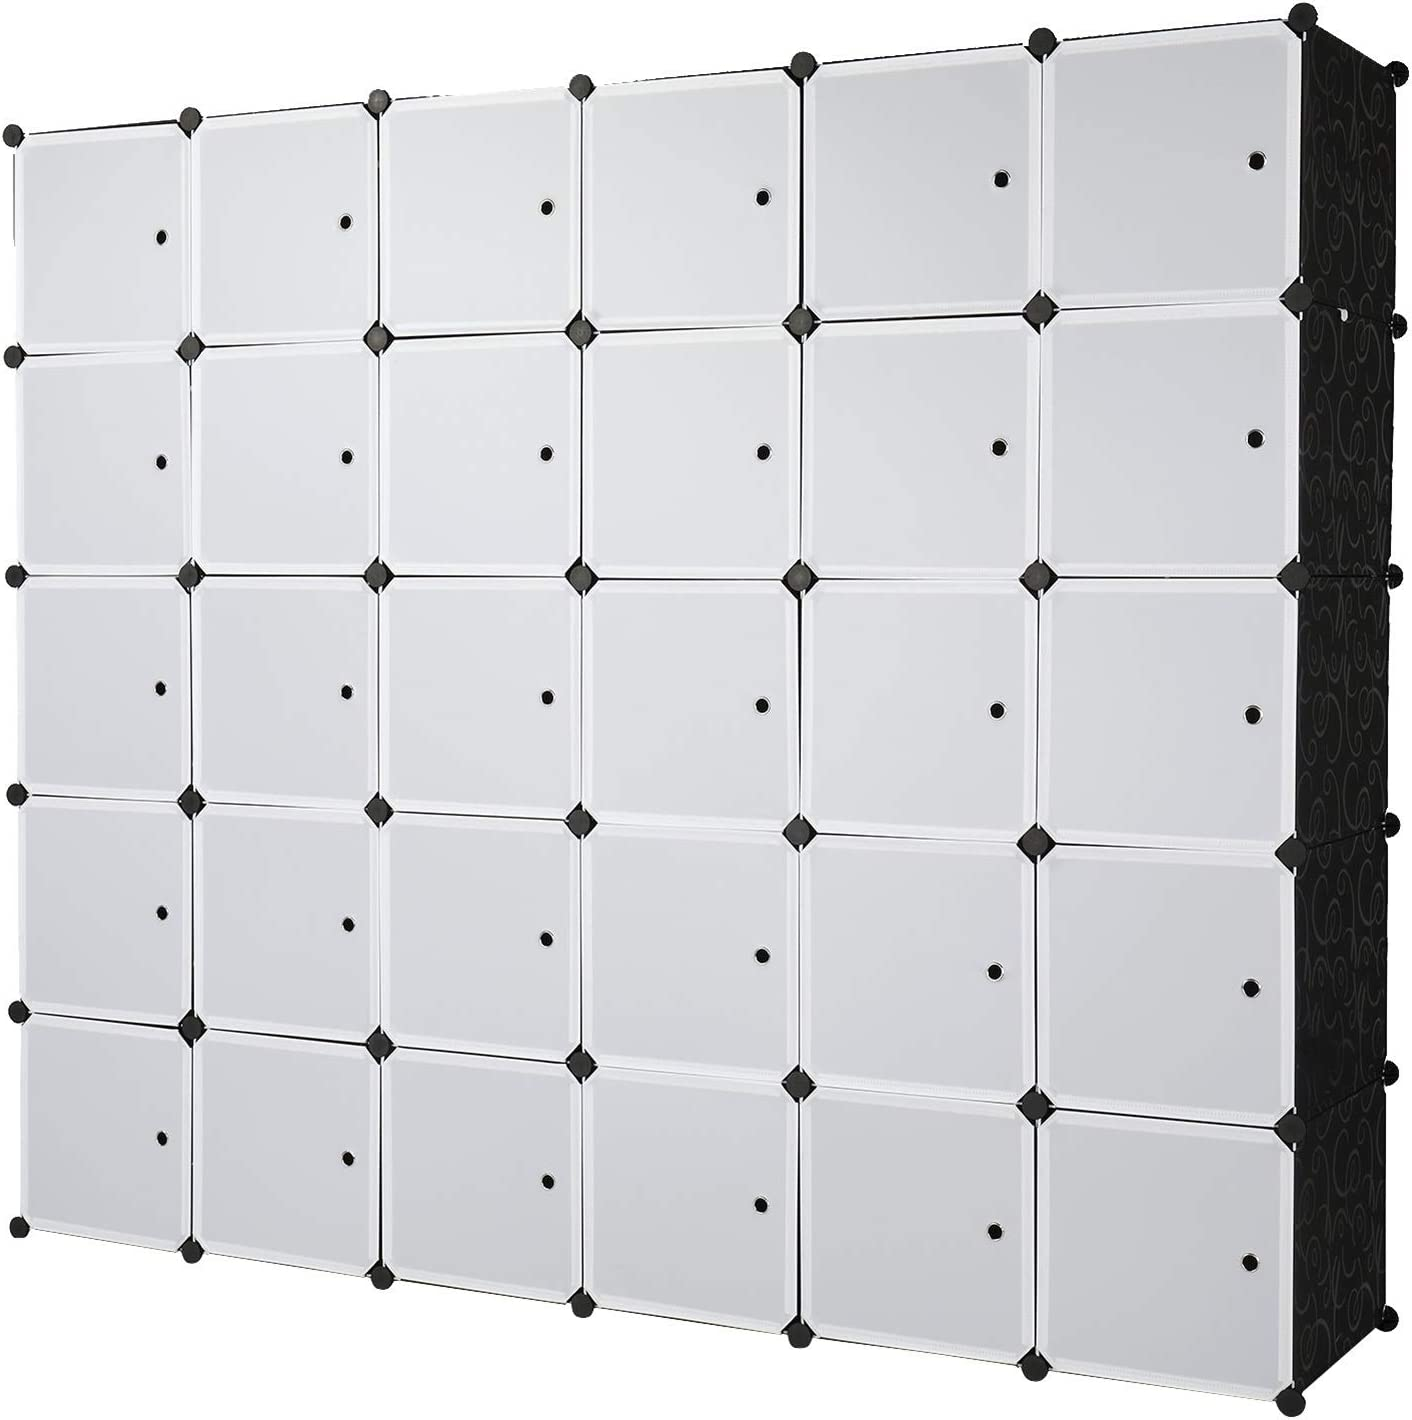 ZYONG Cube Max 71% OFF Storage 30-Cube Popular shop is the lowest price challenge Organizer Shelves Closet